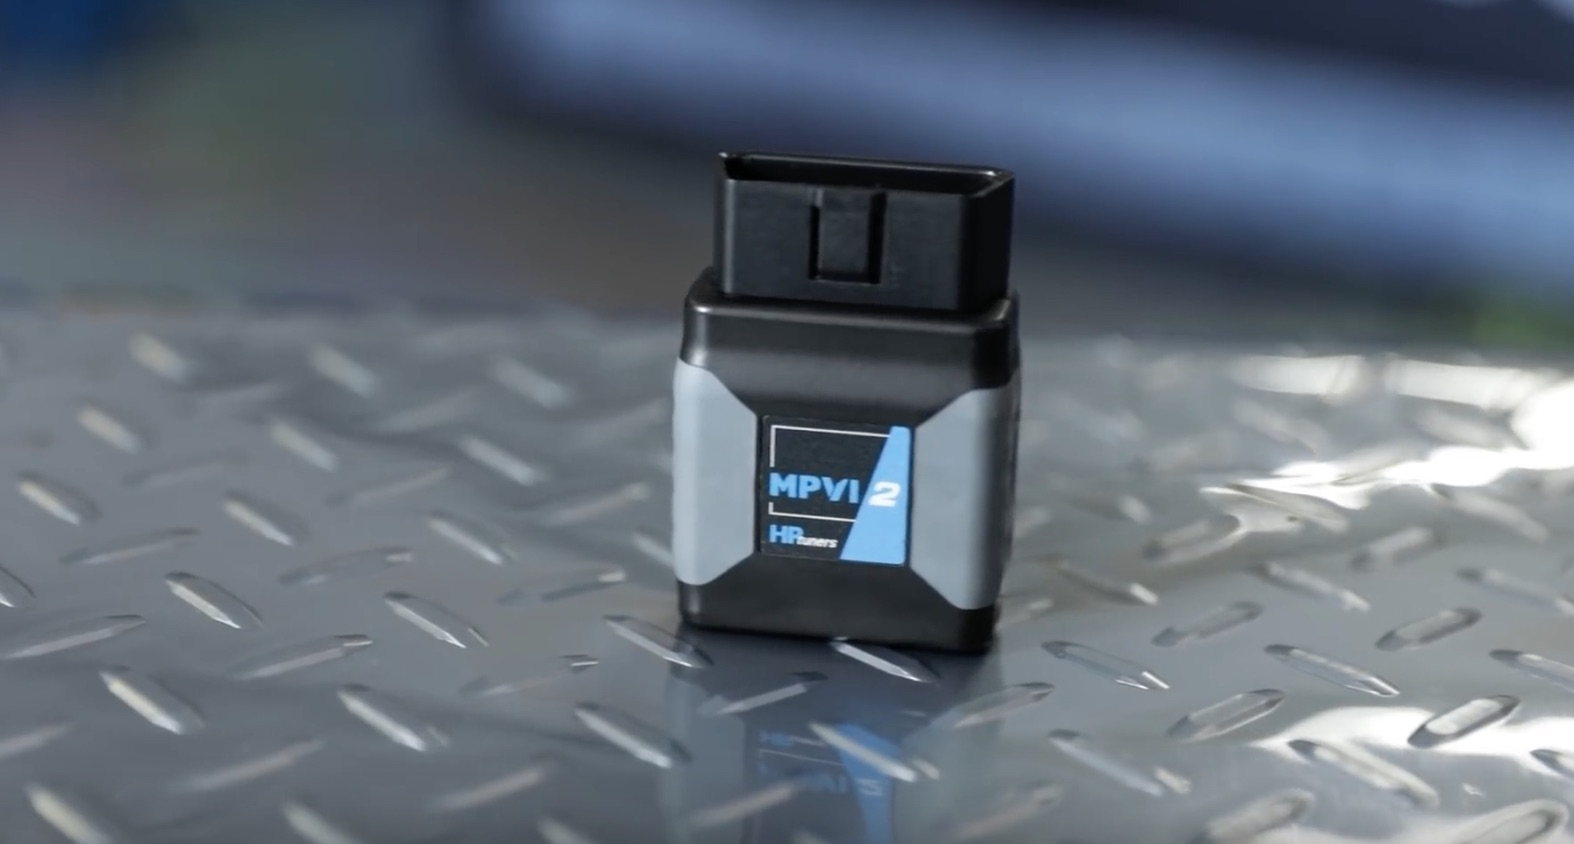 VIDEO: HP Tuners MPVI-2 Product Review and New Features